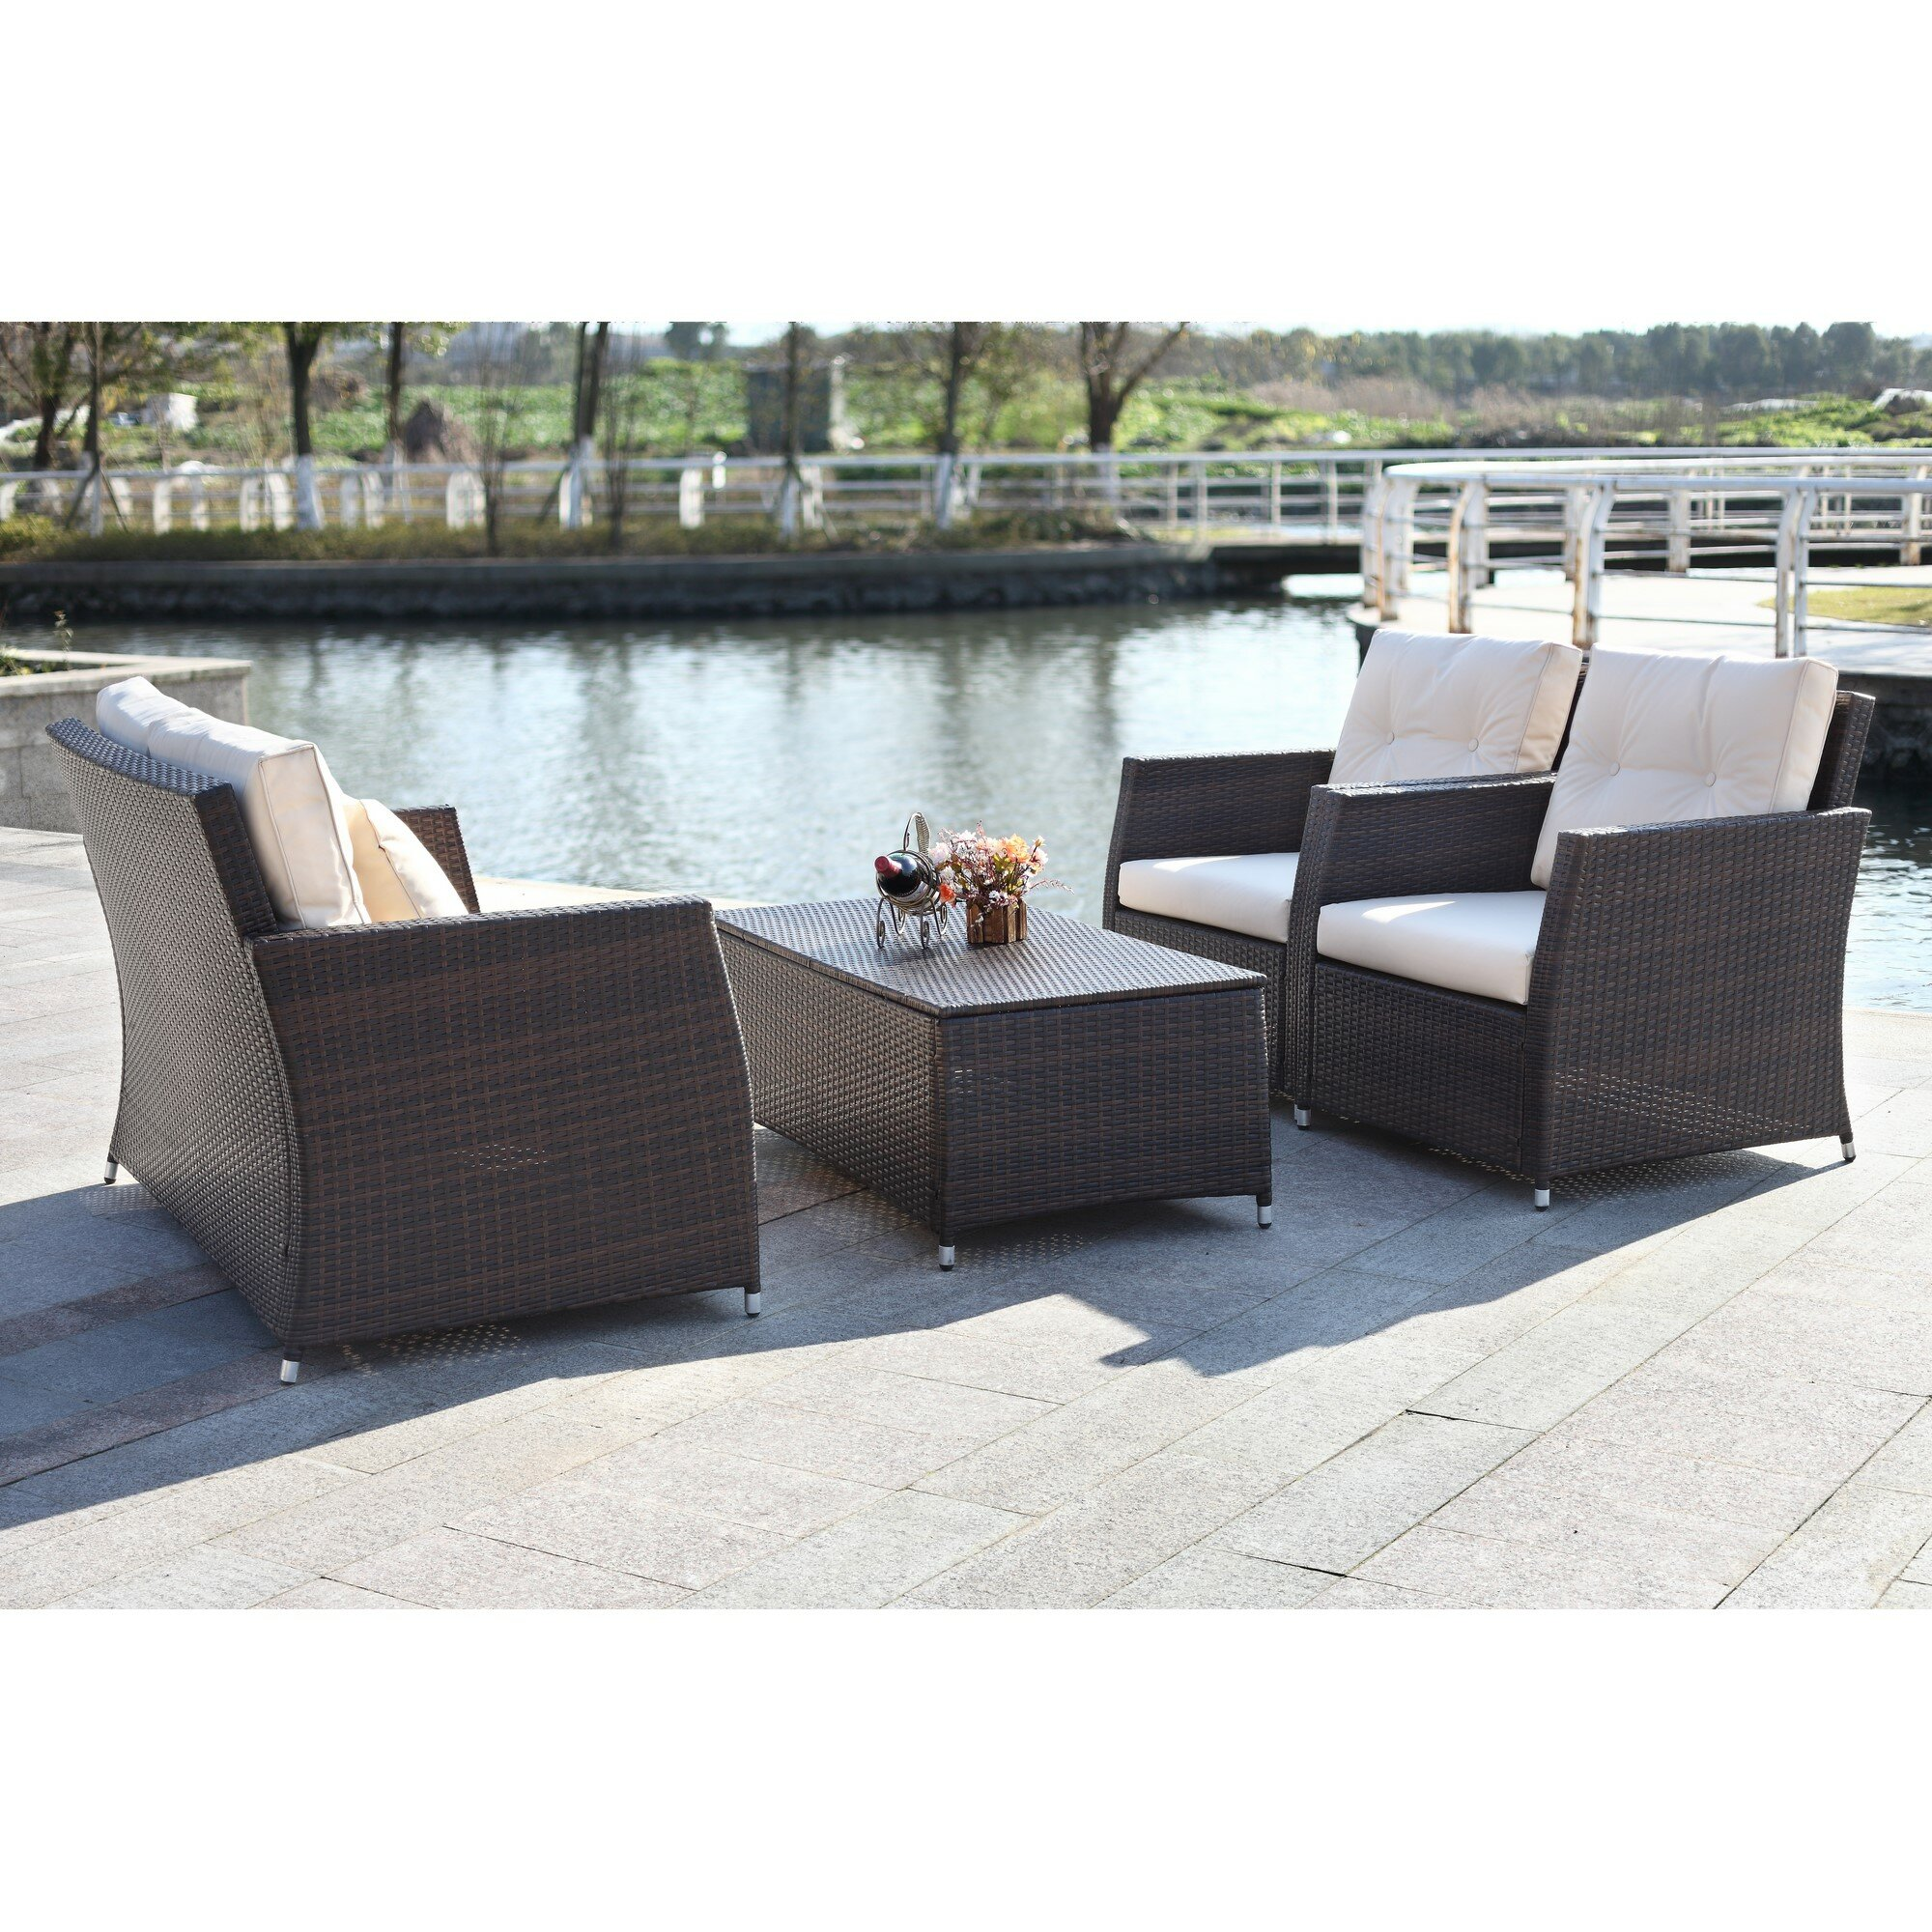 Cove 4-Piece Wicker Outdoor Adjustable Sofa Set with Ottomans